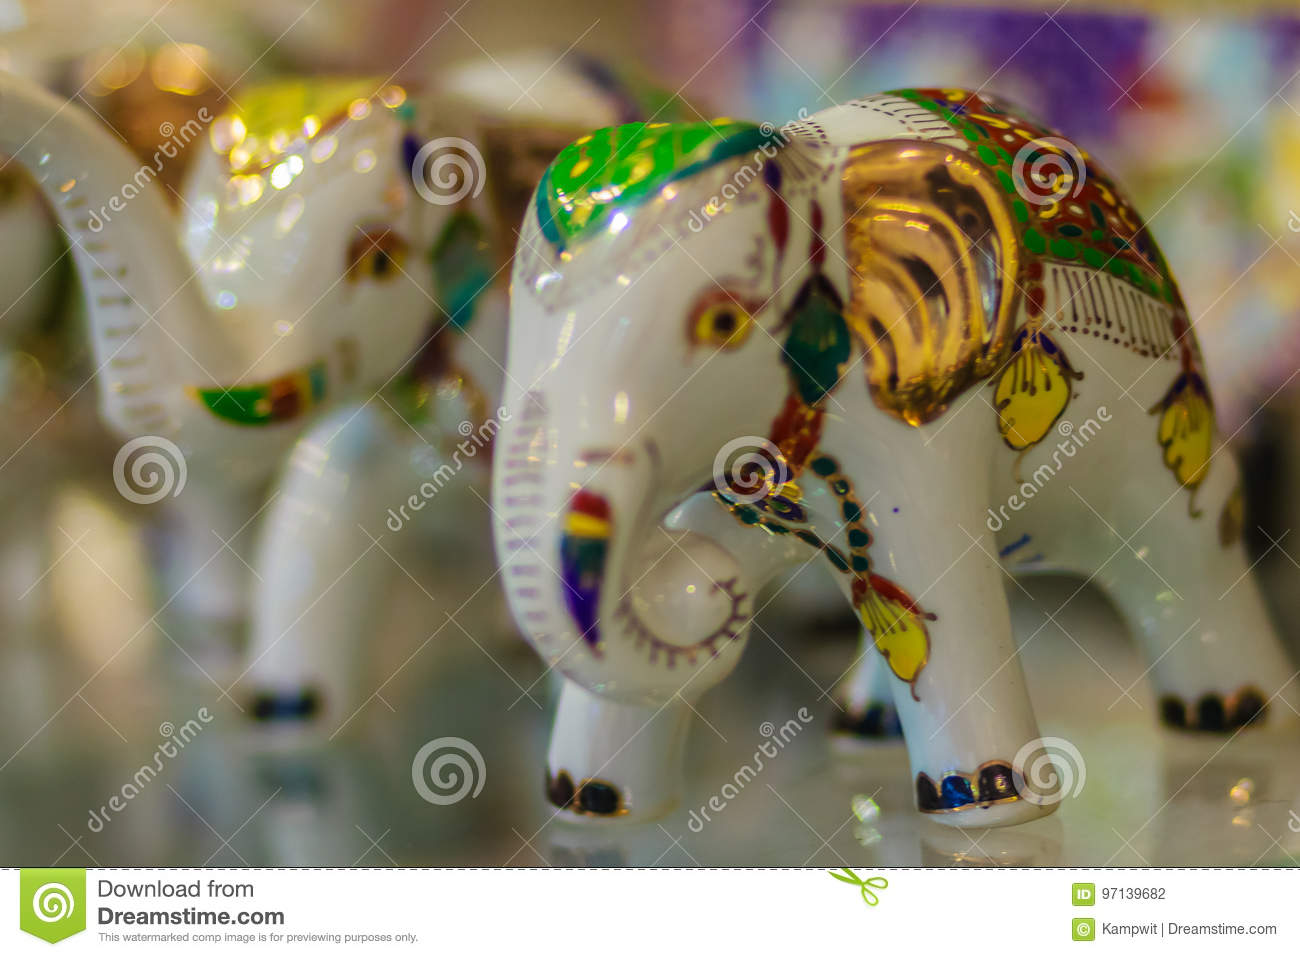 Perfect Cute Porcelain Ceramic Elephant Model For Sale, Premium Souvenir